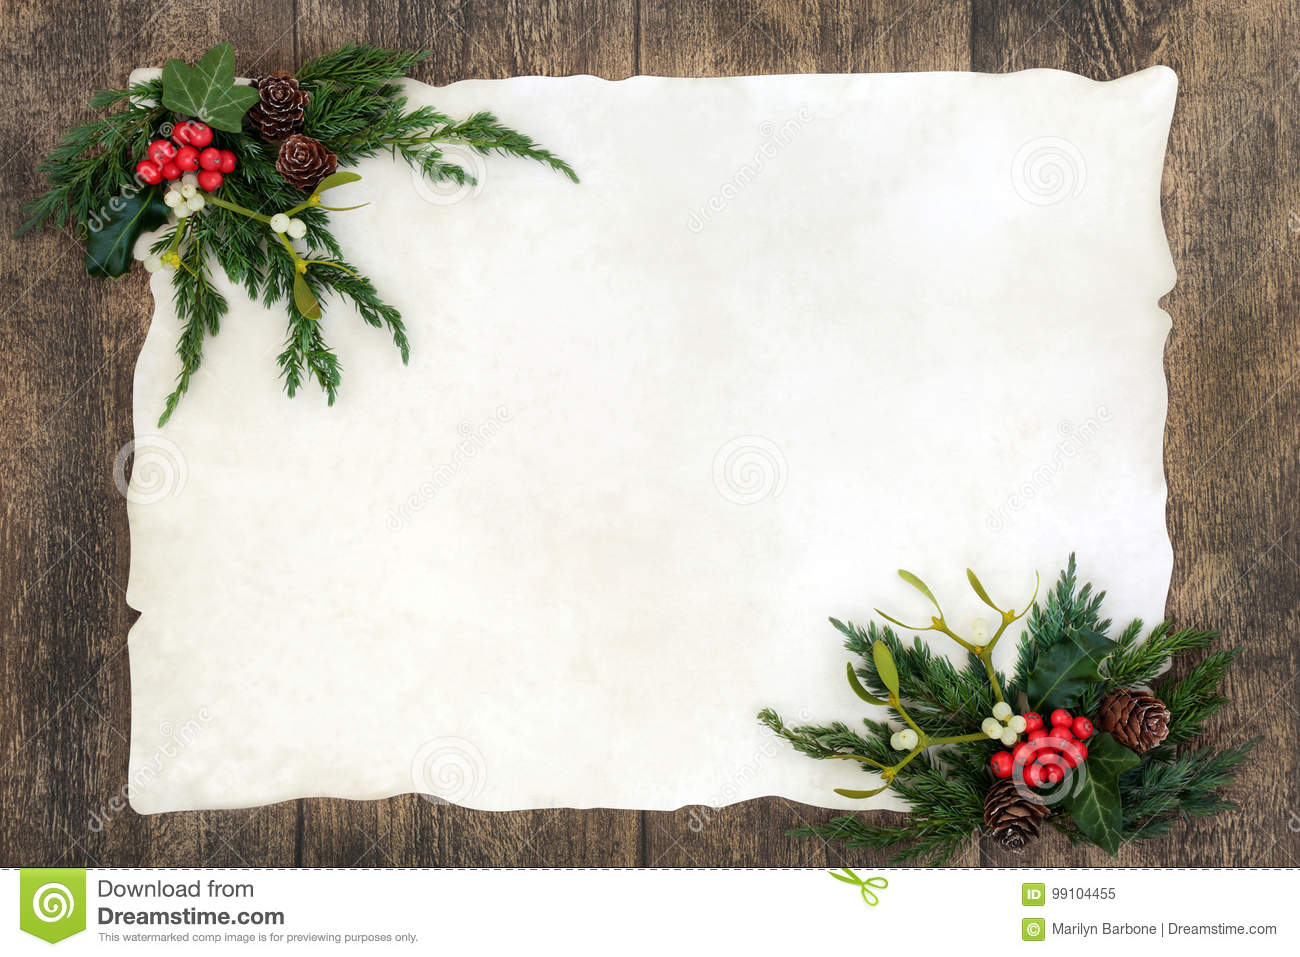 Old Fashioned Christmas Border Stock Image - Image of juniper ...